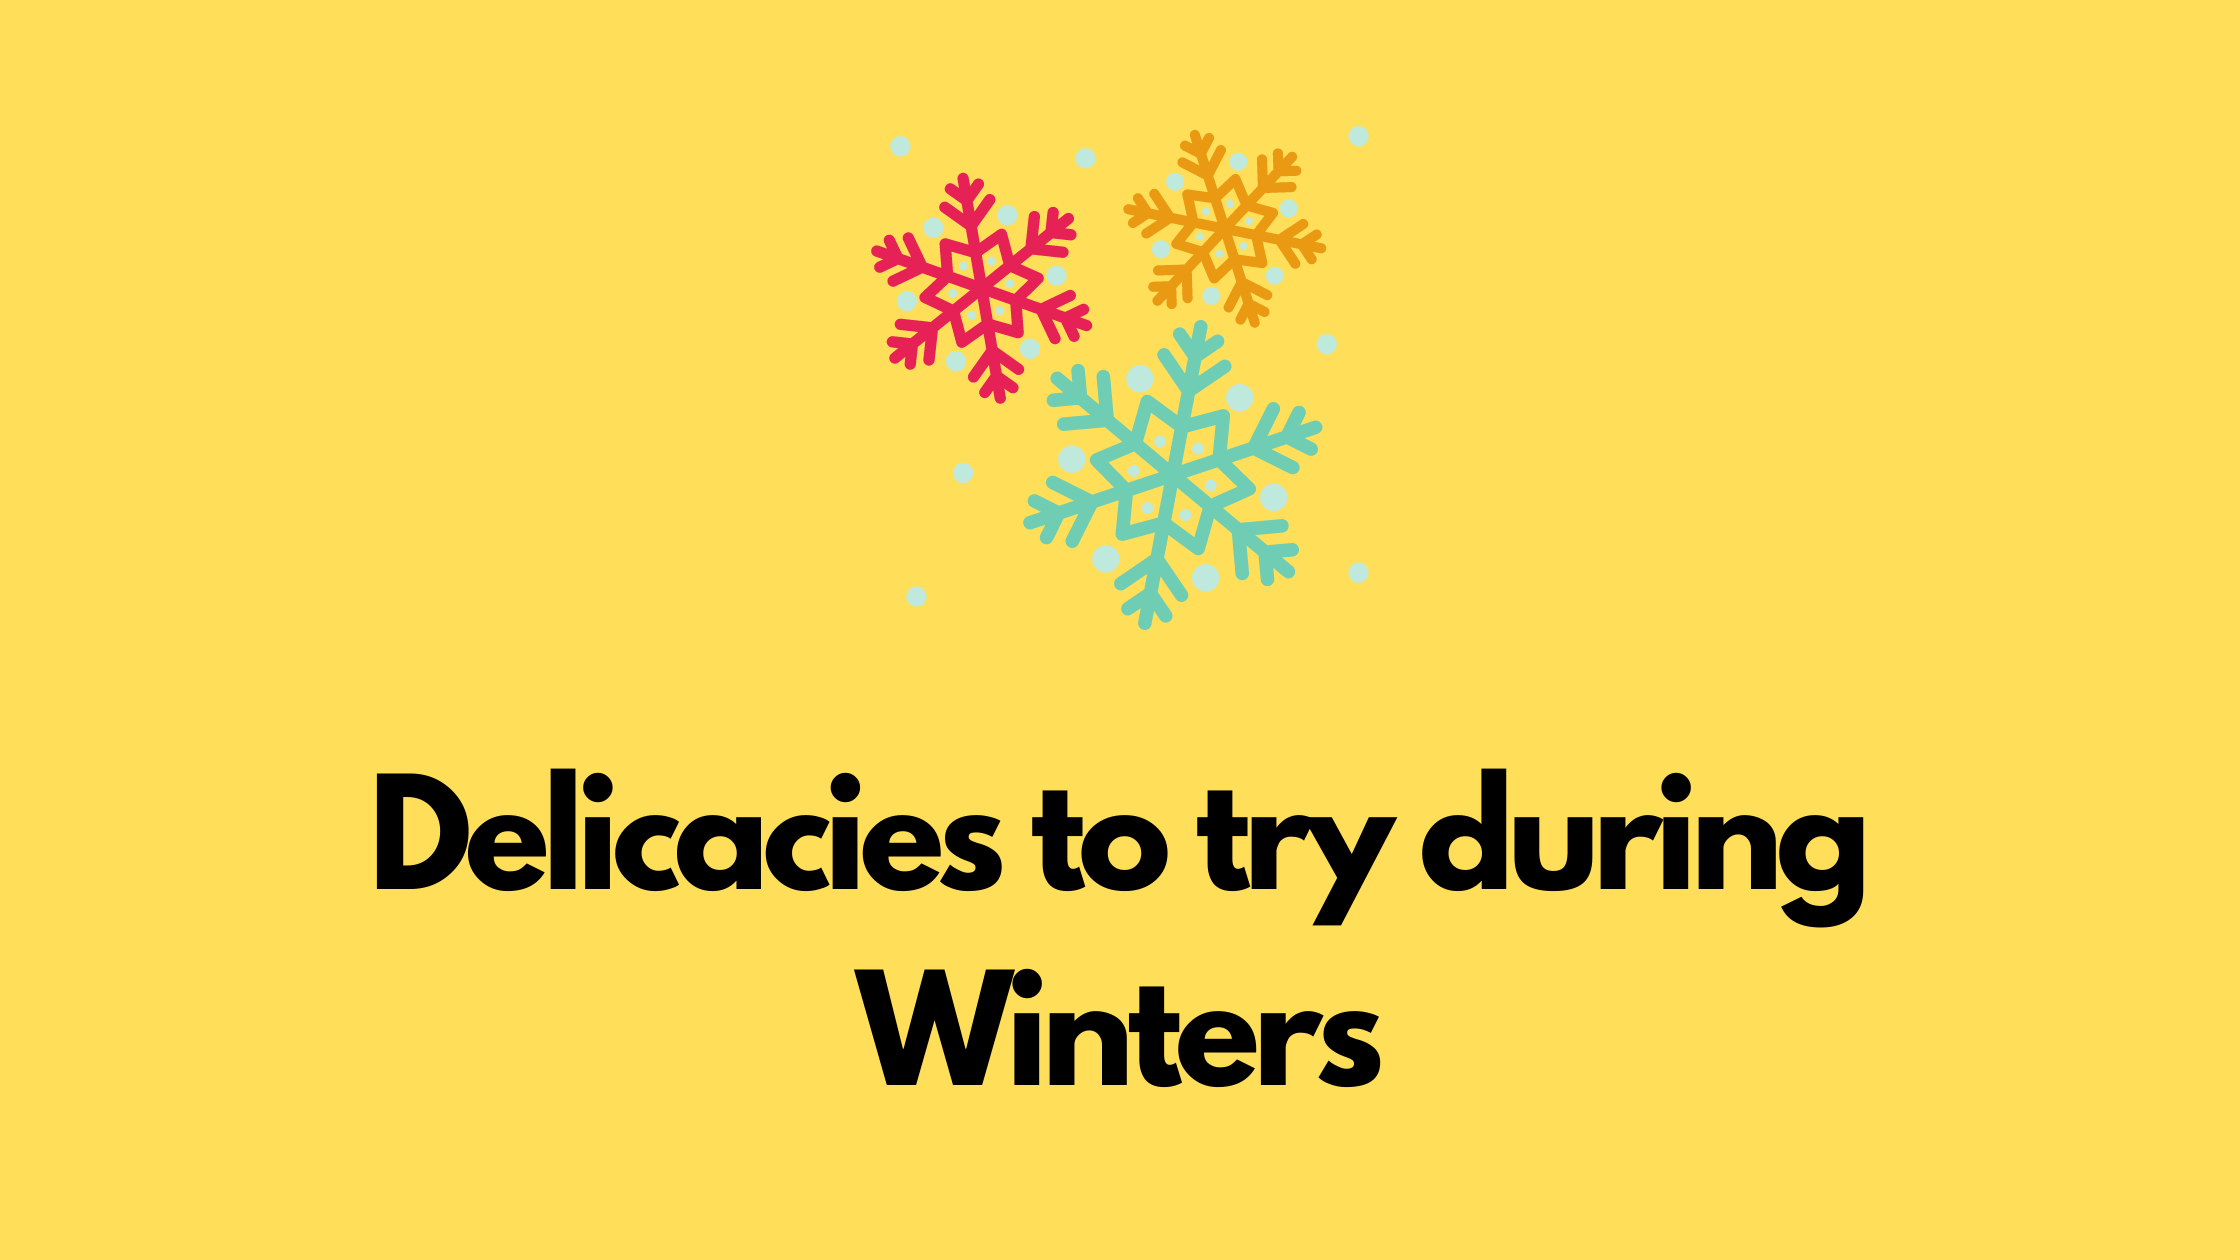 Delicacies to try during winter